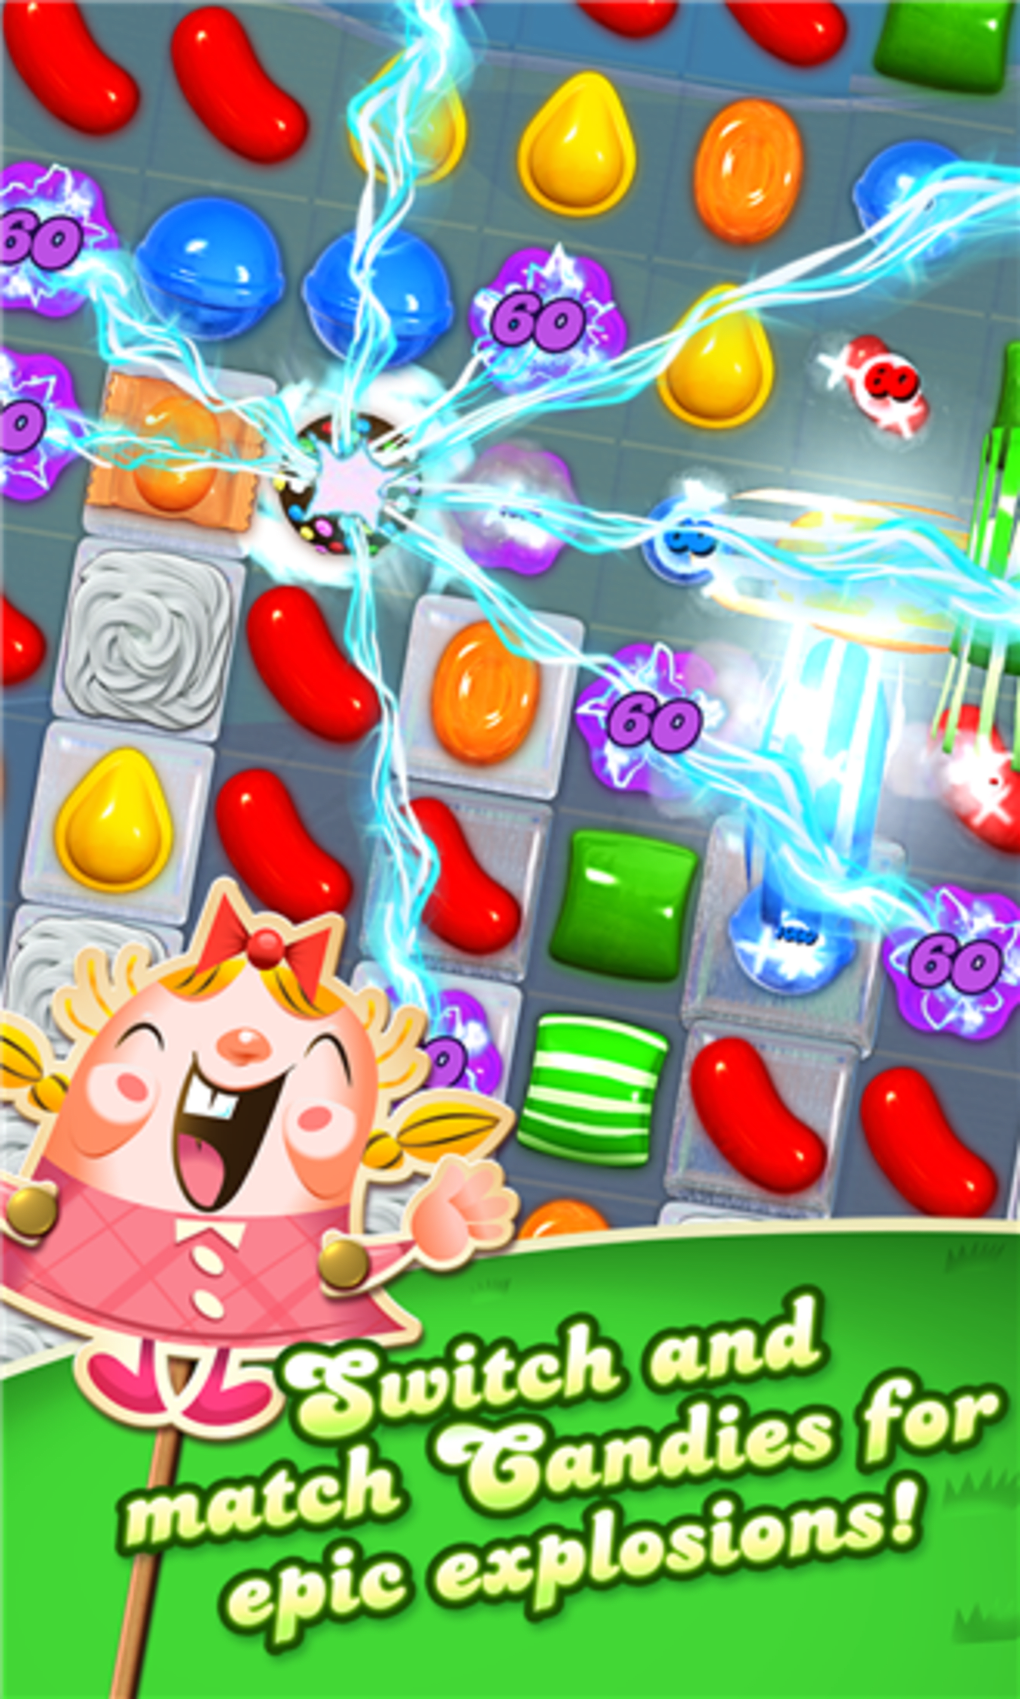 candy crush game free download for mobile phone